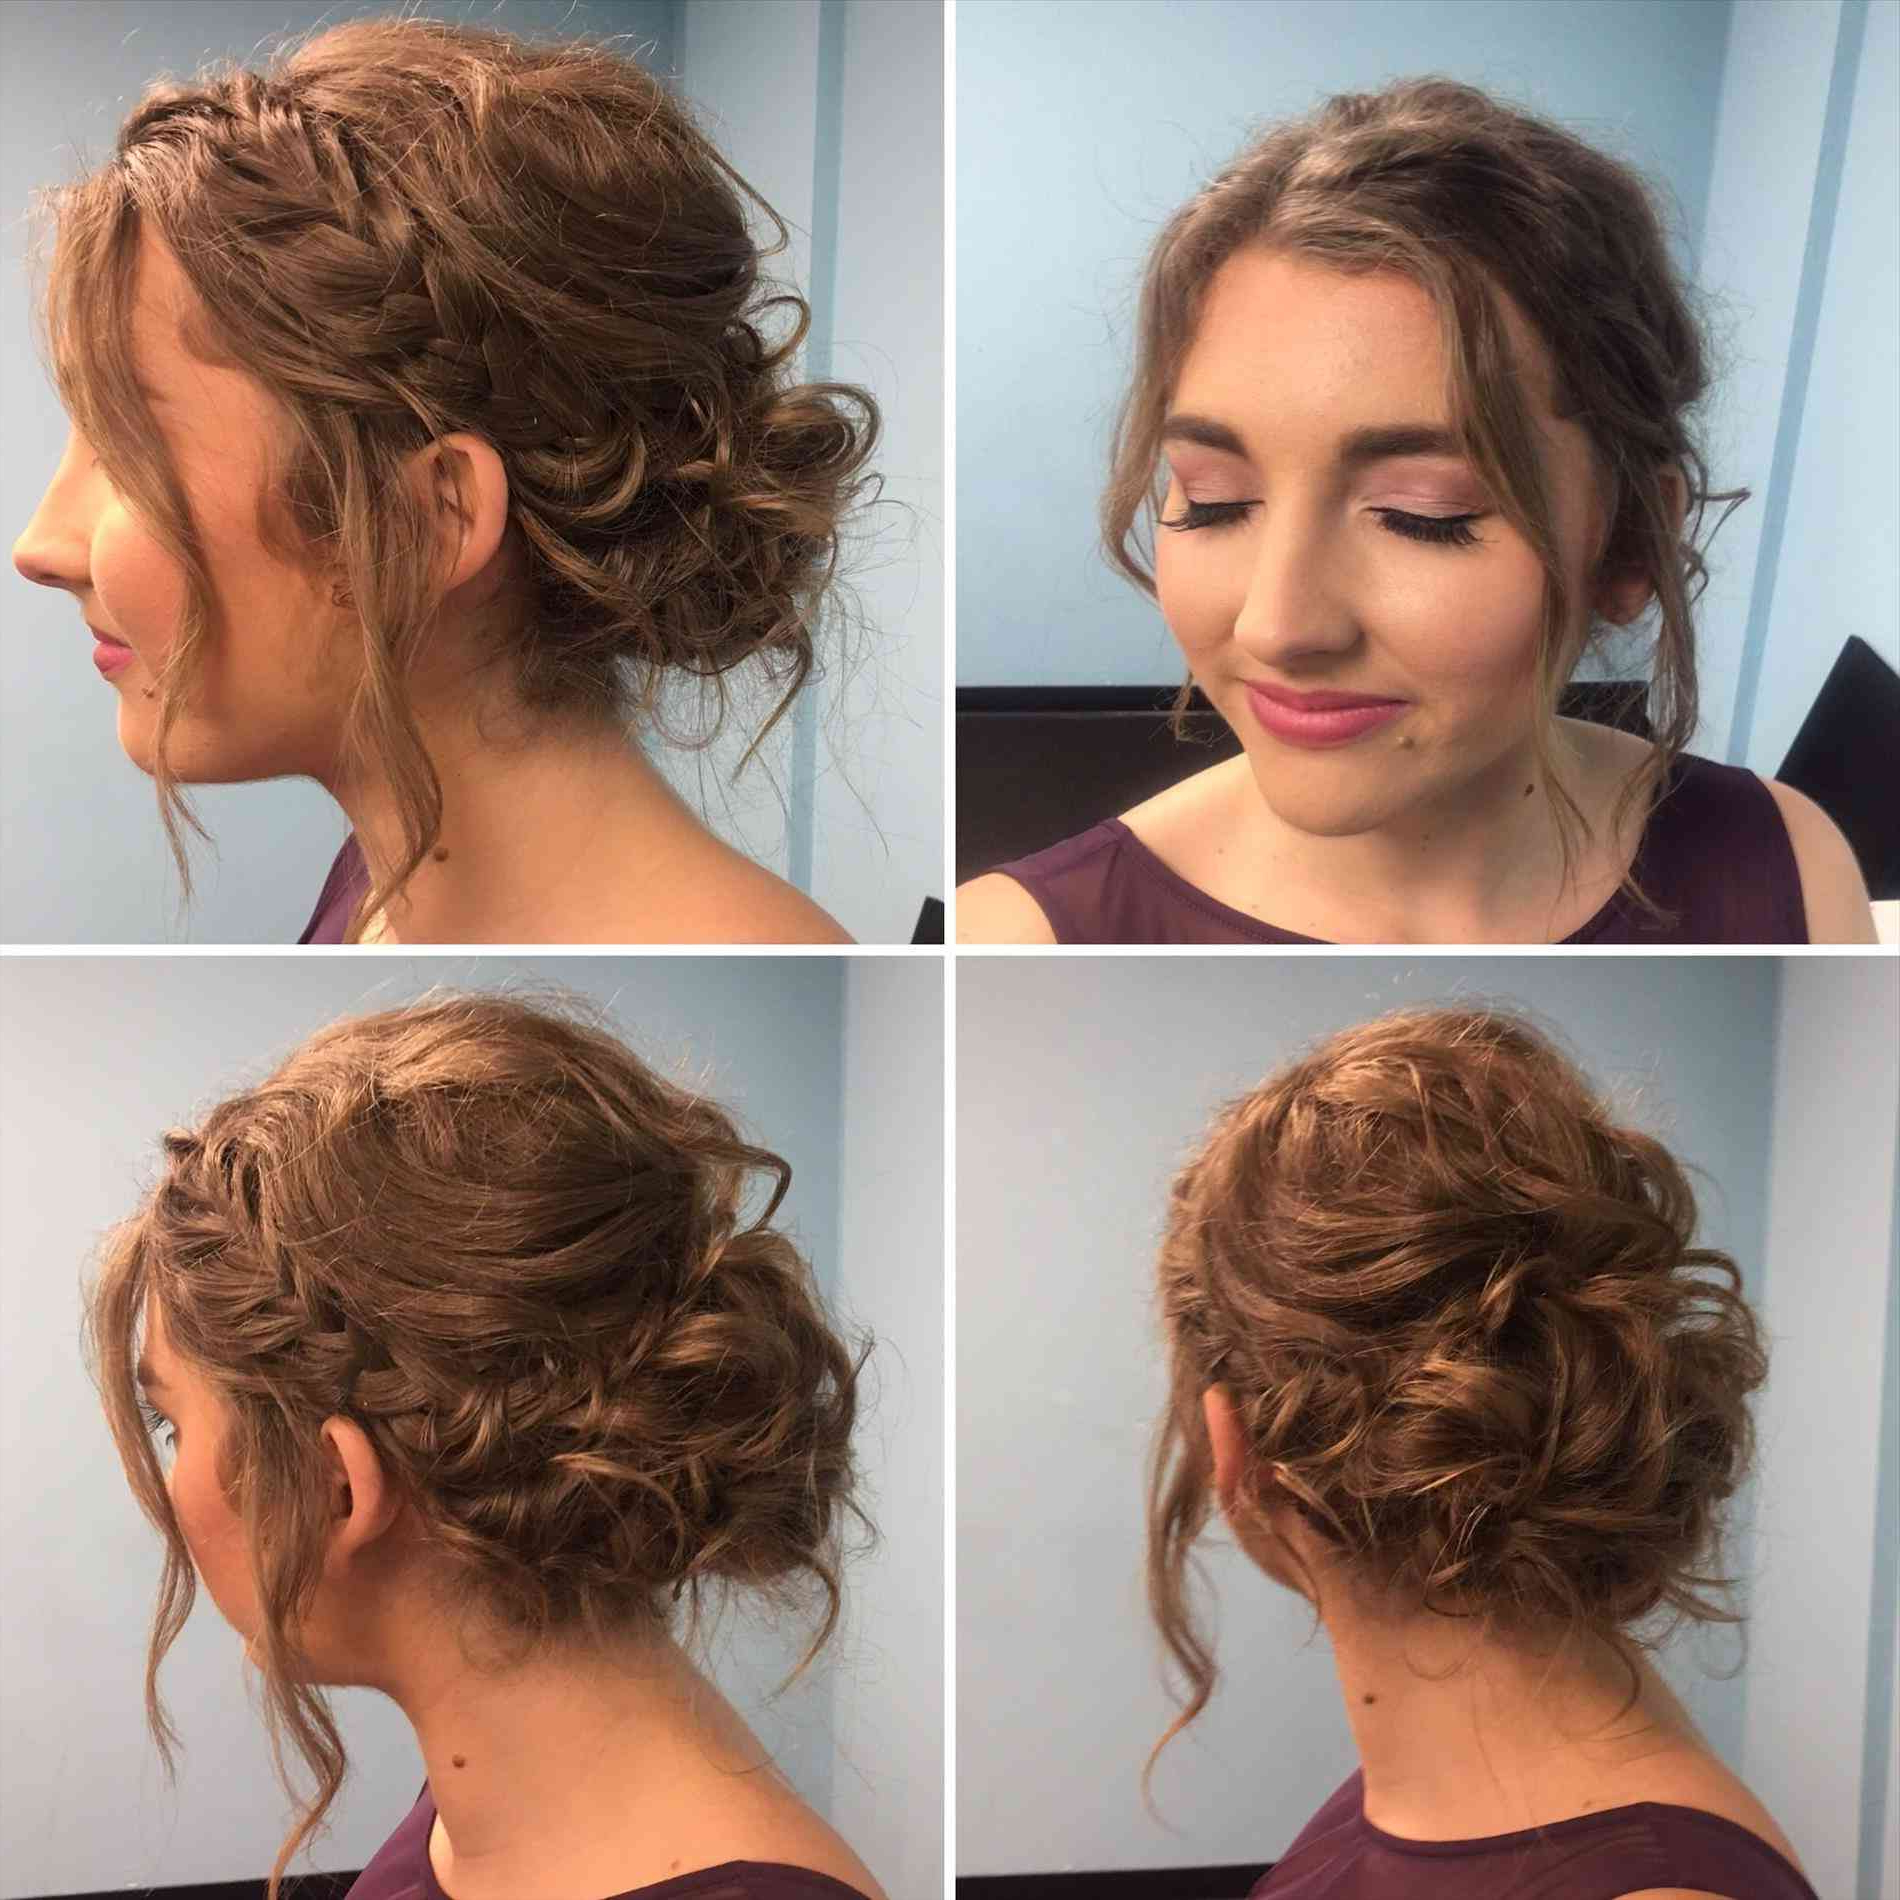 Peopleus Singer Hairdo For Short Hair For Prom Taylor Swift Wore With Homecoming Short Hair Styles (View 19 of 25)